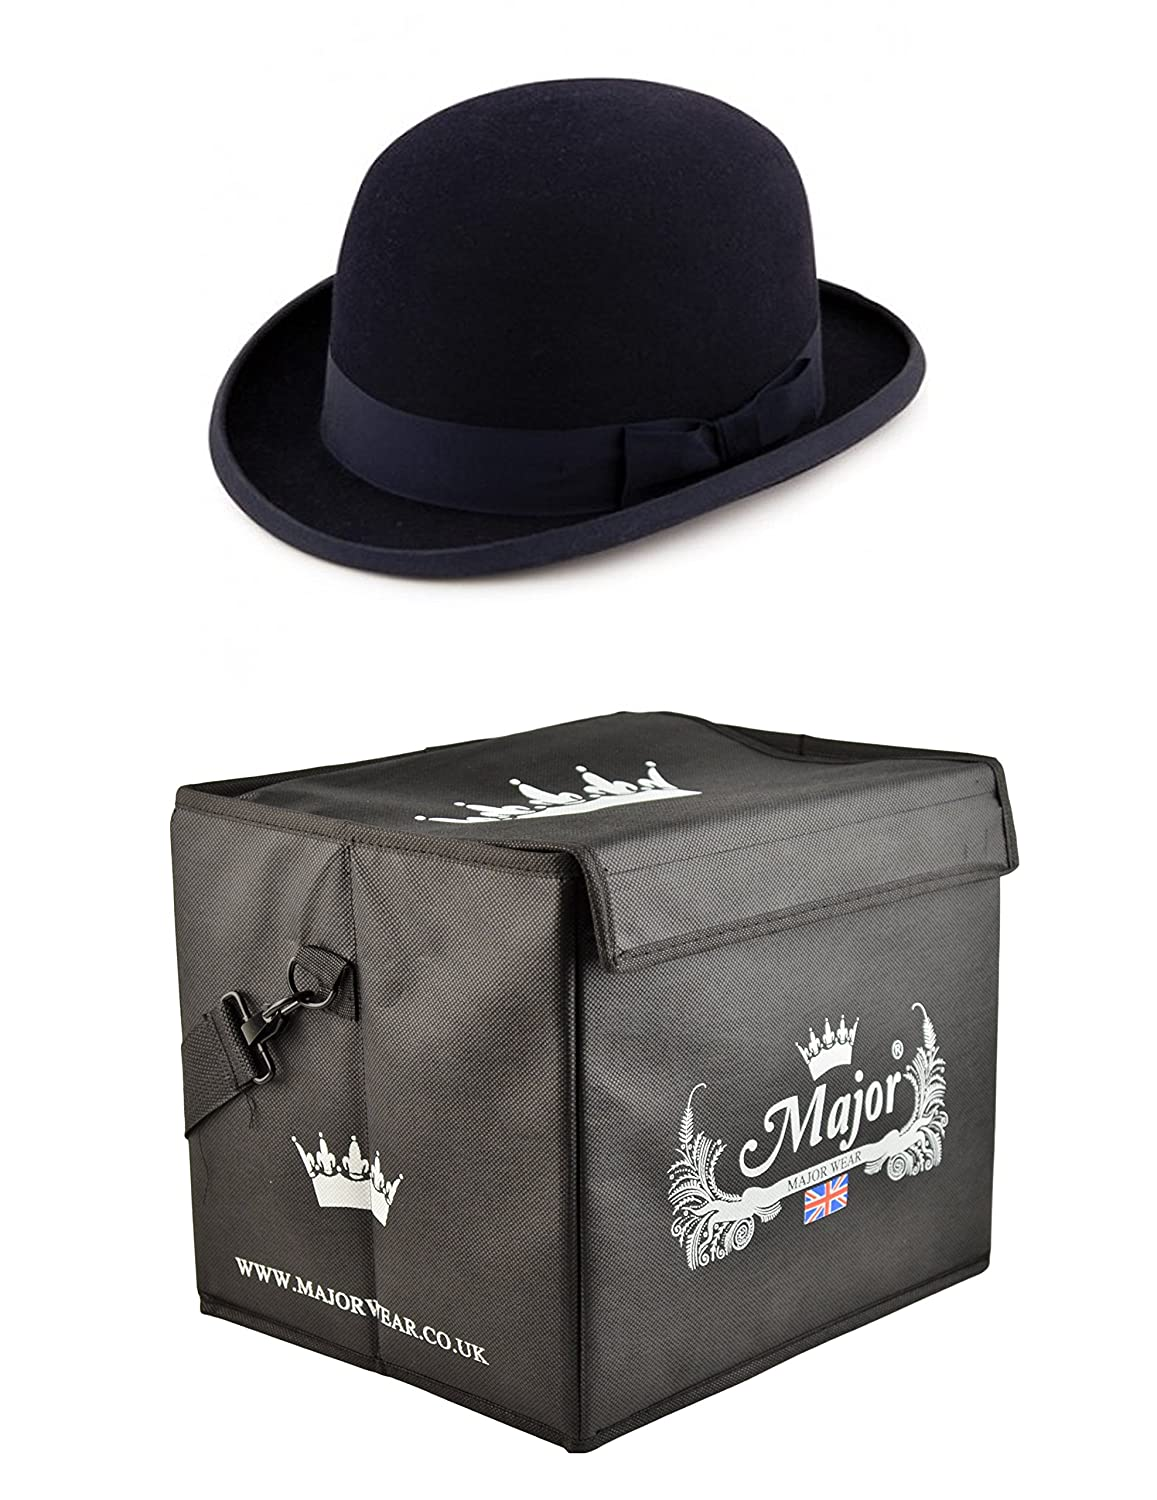 Major Wear Black Wool Felt Stiff Bowler Hat Satin Lined complete with Hat Box